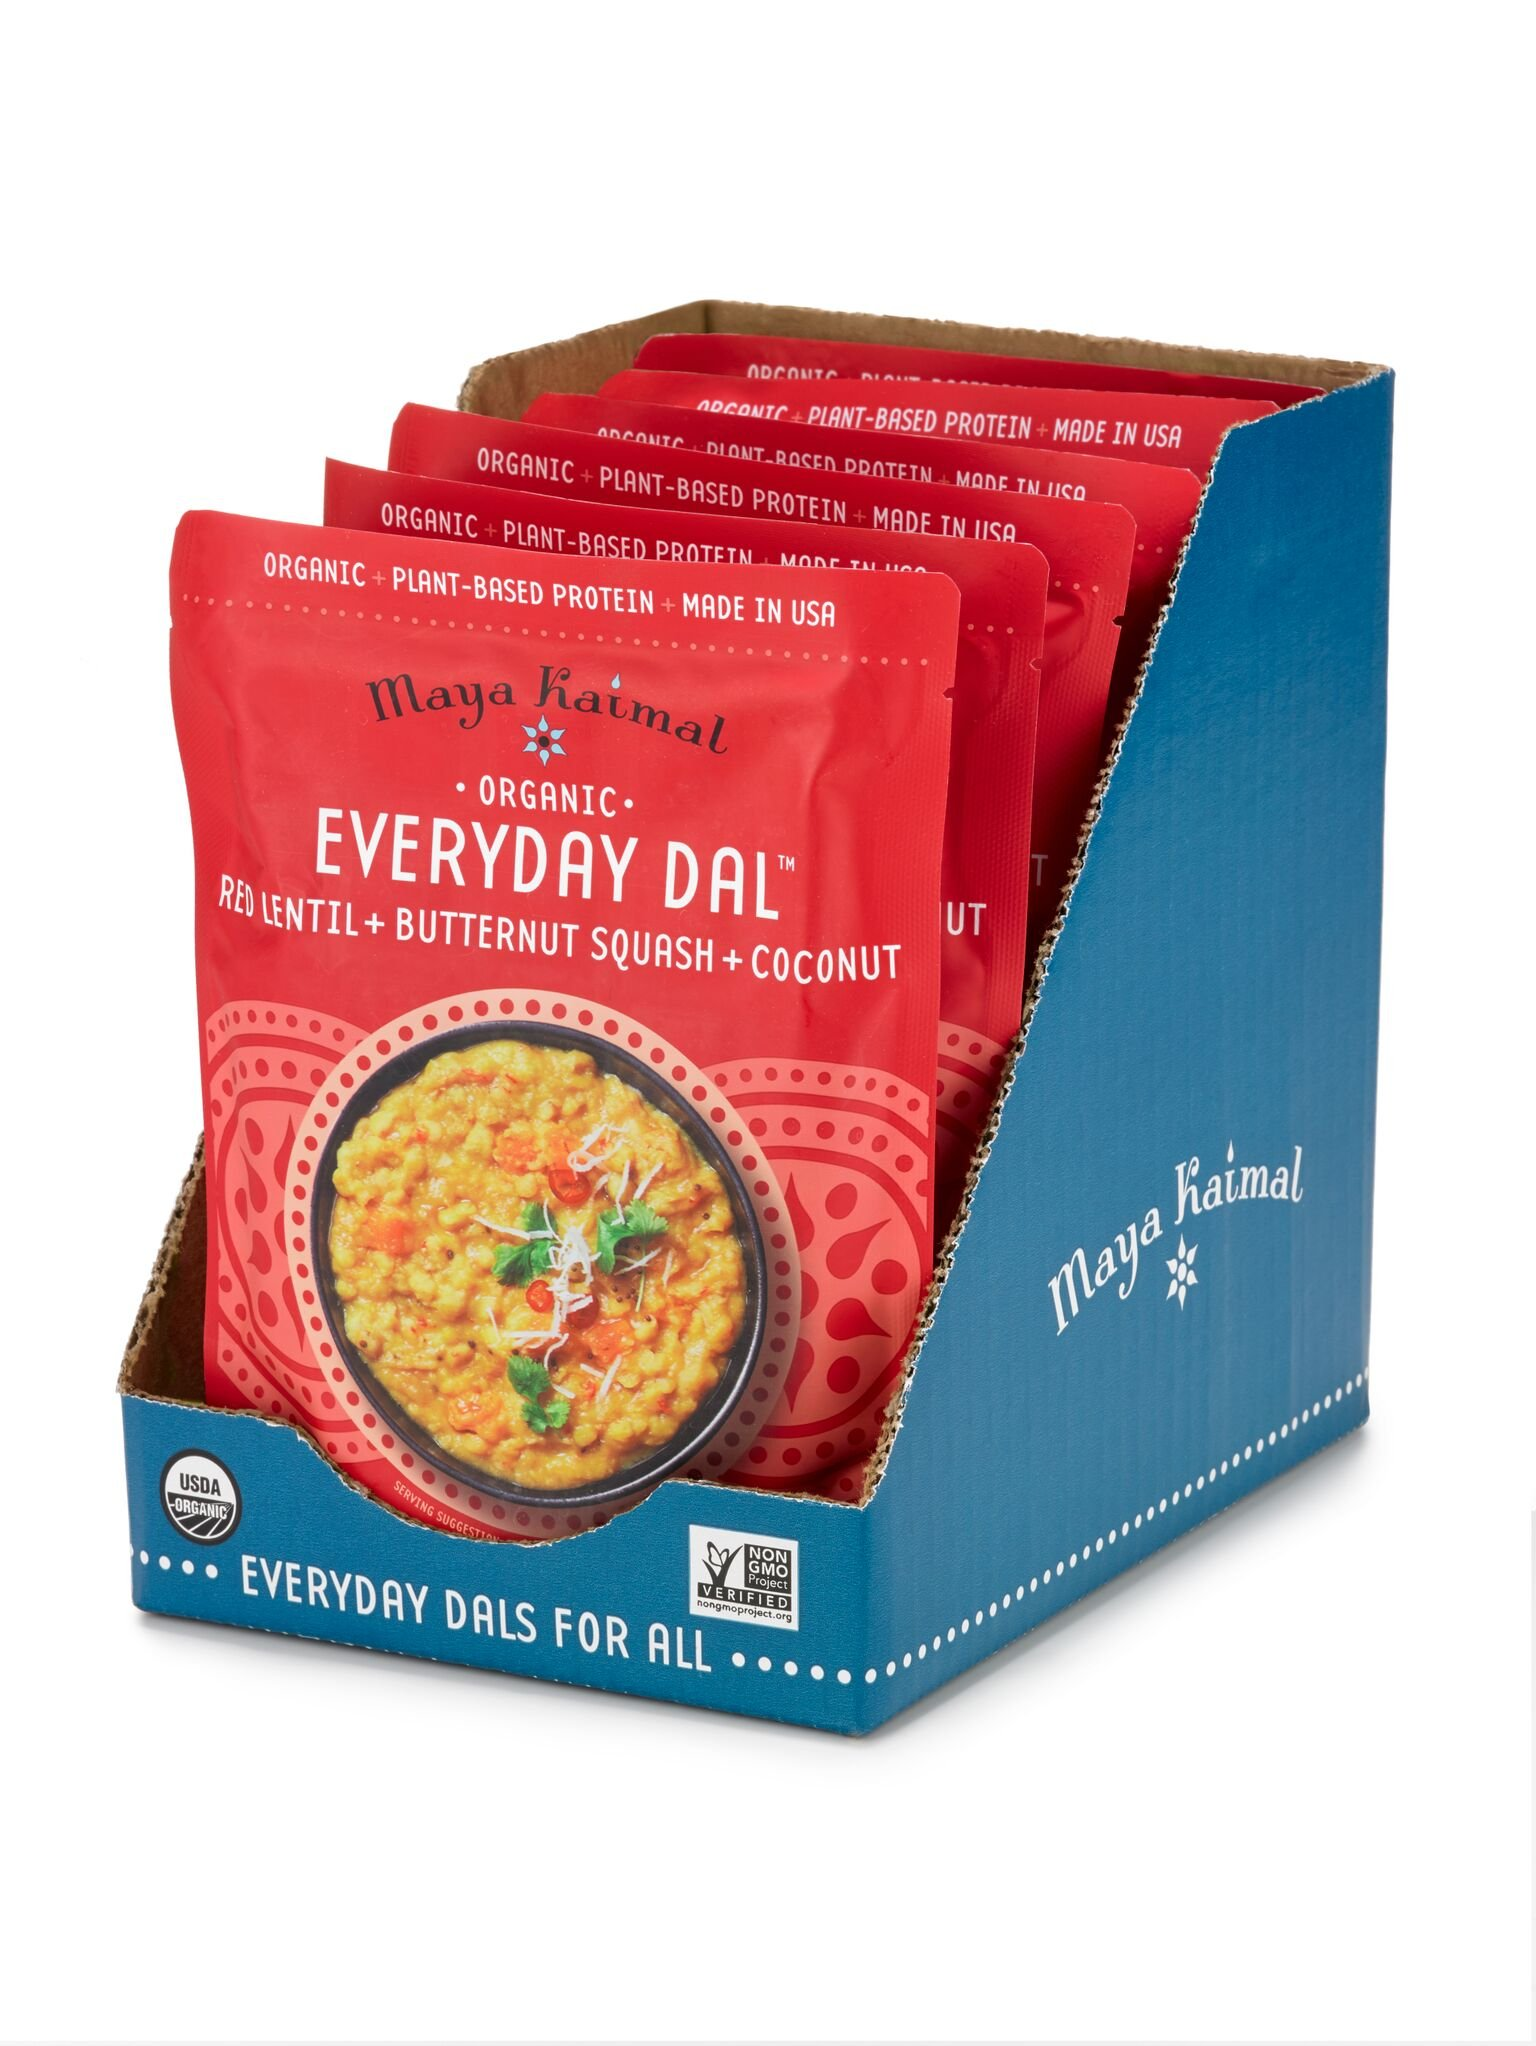 Maya Kaimal Organic Indian Red Lentil Everyday Dal, 10 oz (Pack of 6), Fully Cooked with Butternut Squash and Coconut. Vegan, Microwavable, Ready to Eat